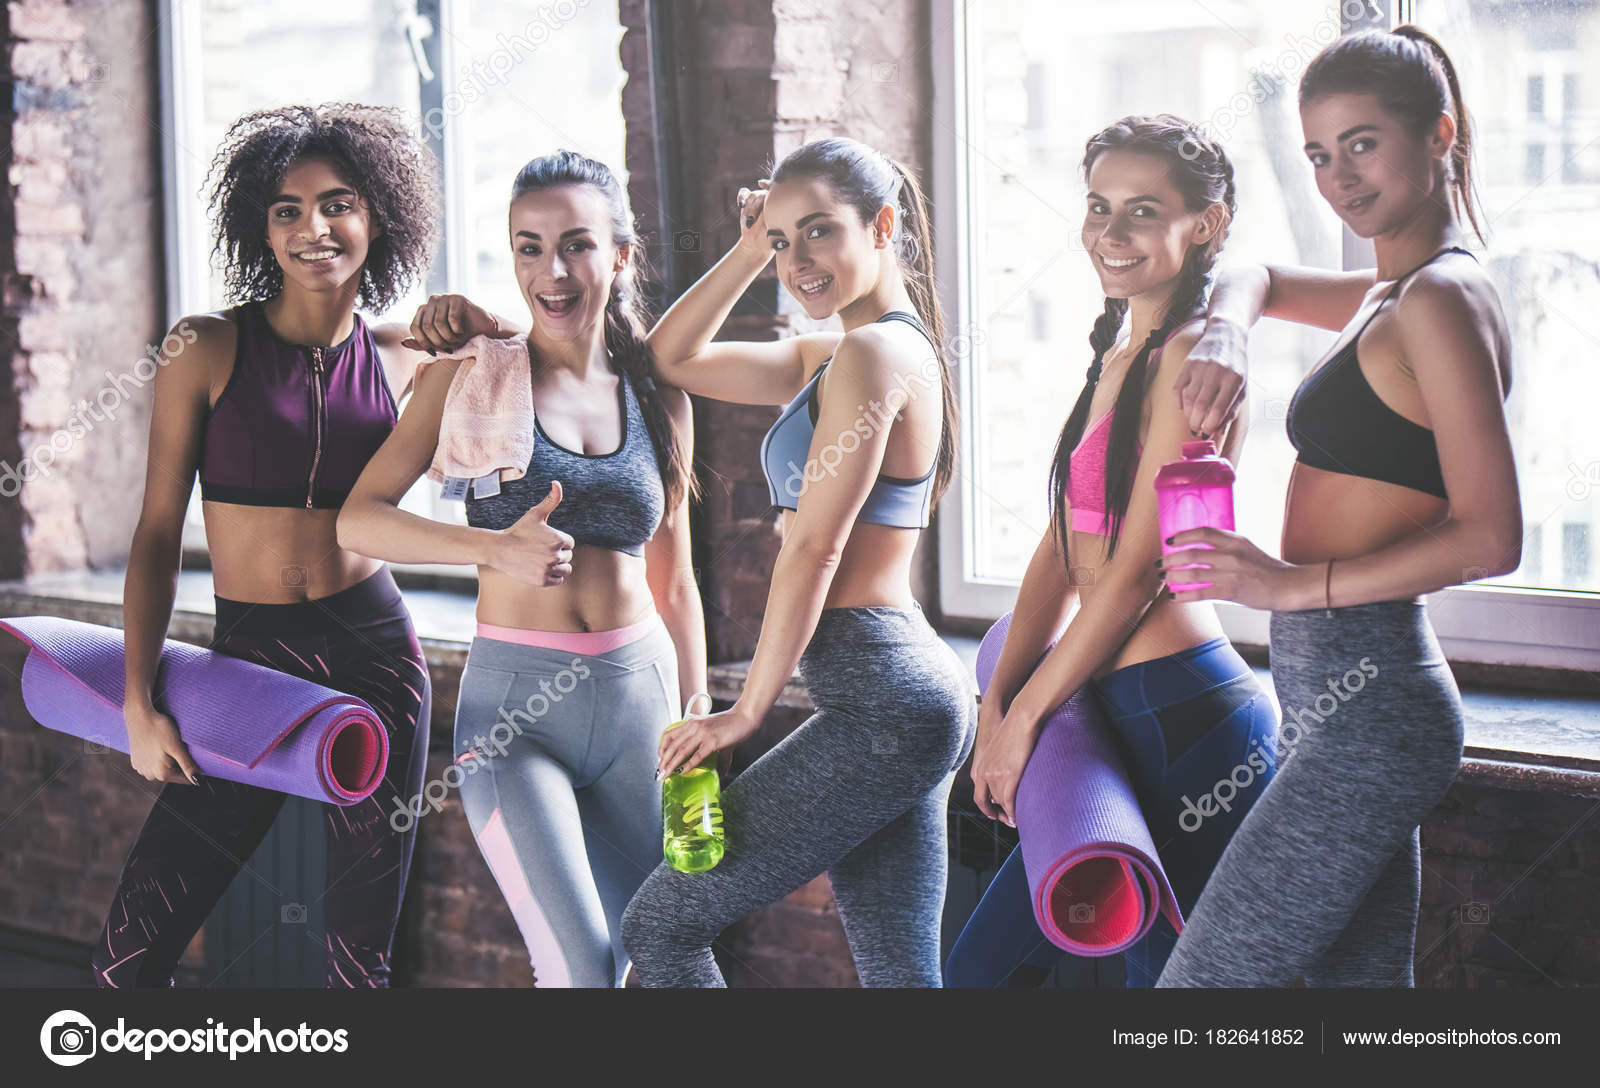 Attractive Young Sport Girls Are Having Rest After Doing Yoga Together Group Training Healthy Lifestyle Concept Photo By 4pmphotogmail